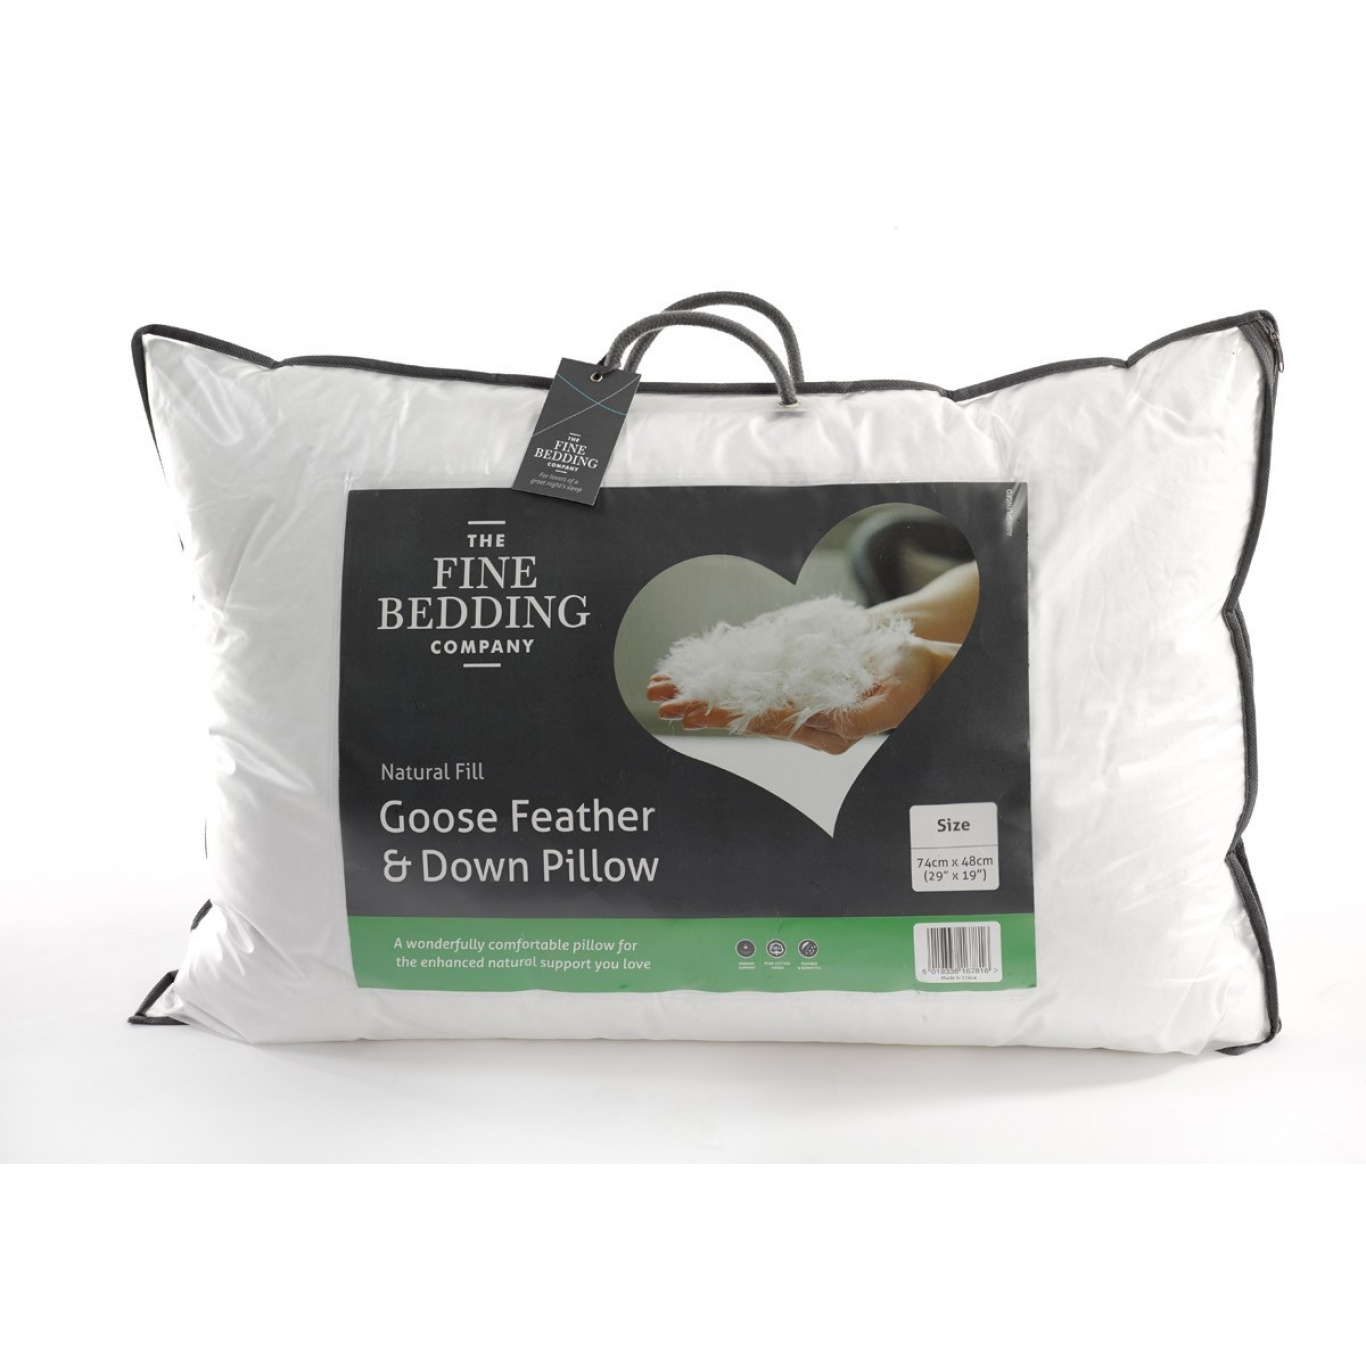 Image of Goose Feather & Down Pillow